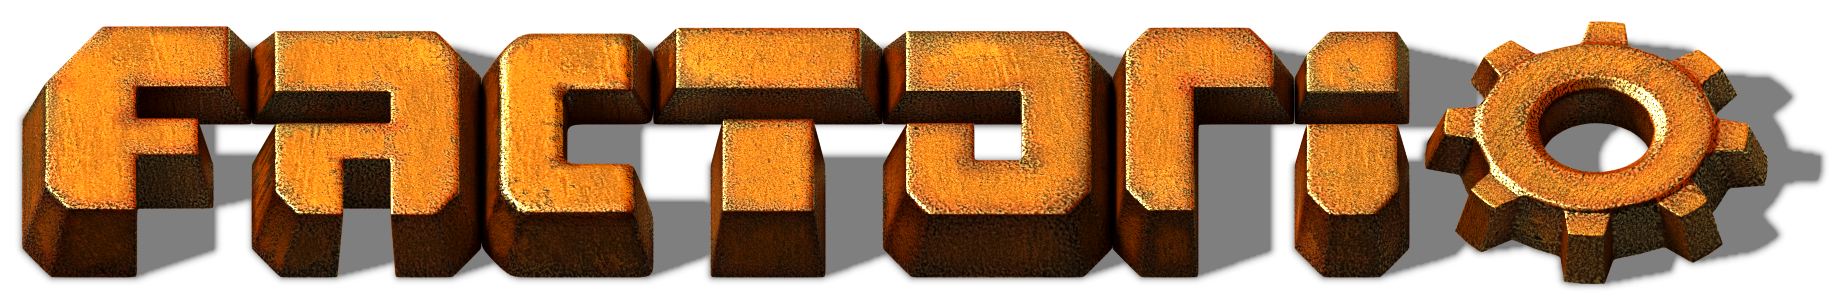 File:Factorio-logo.png